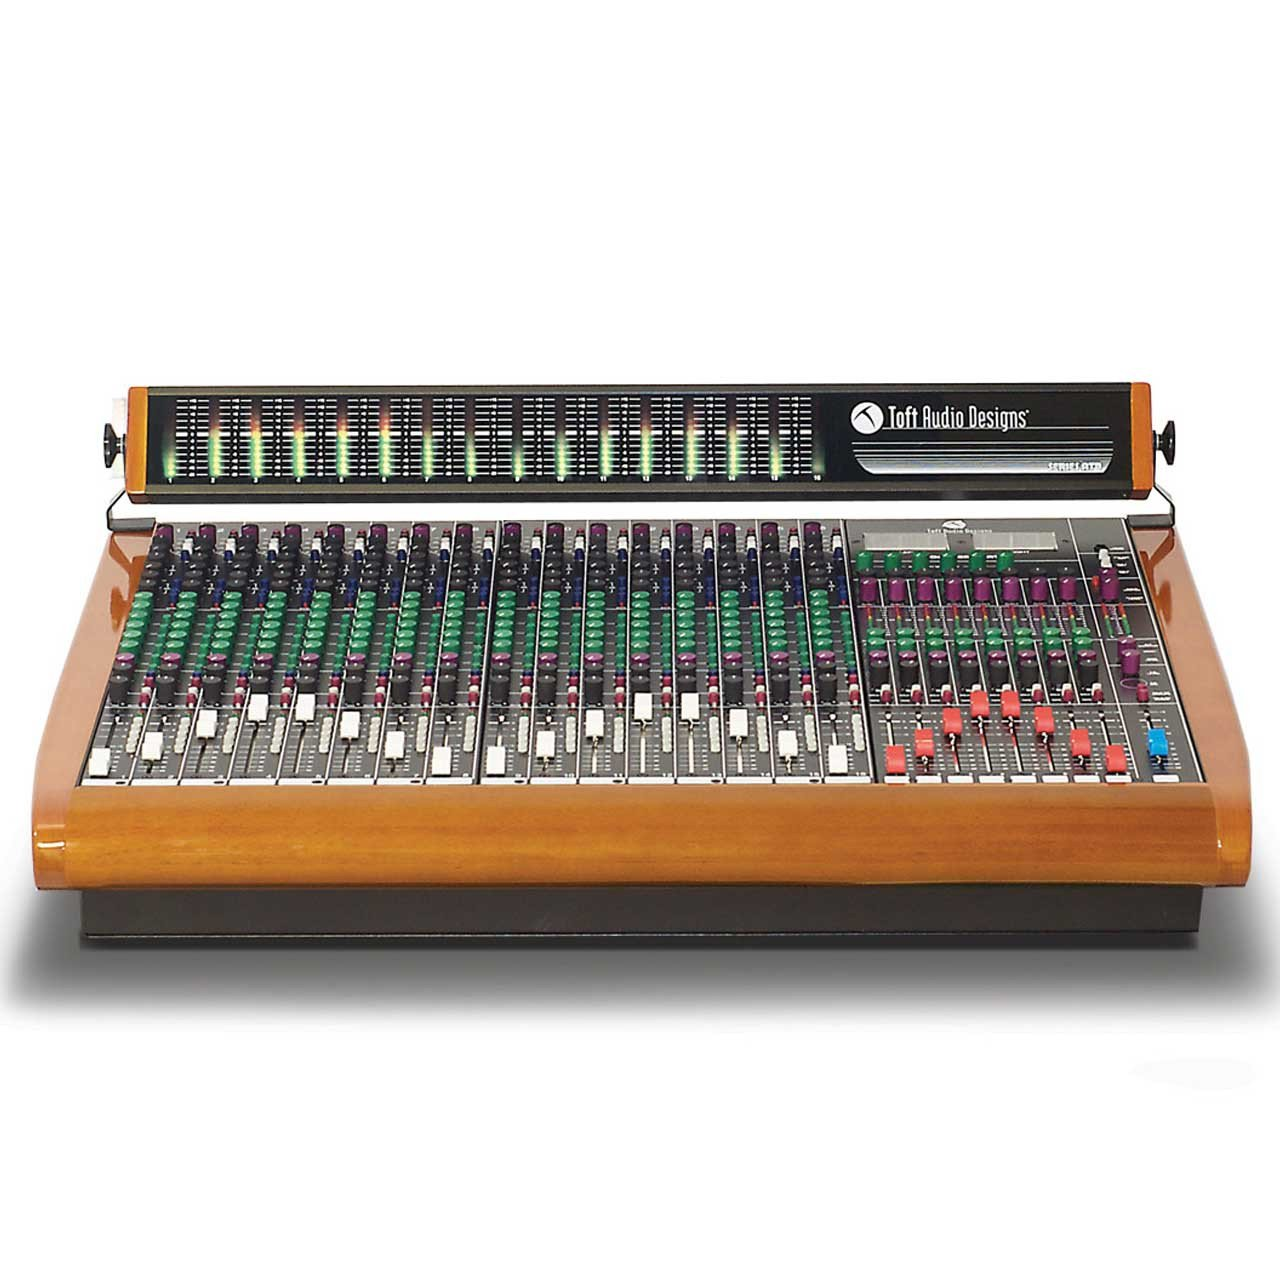 Toft Audio Designs Series ATB16 Console